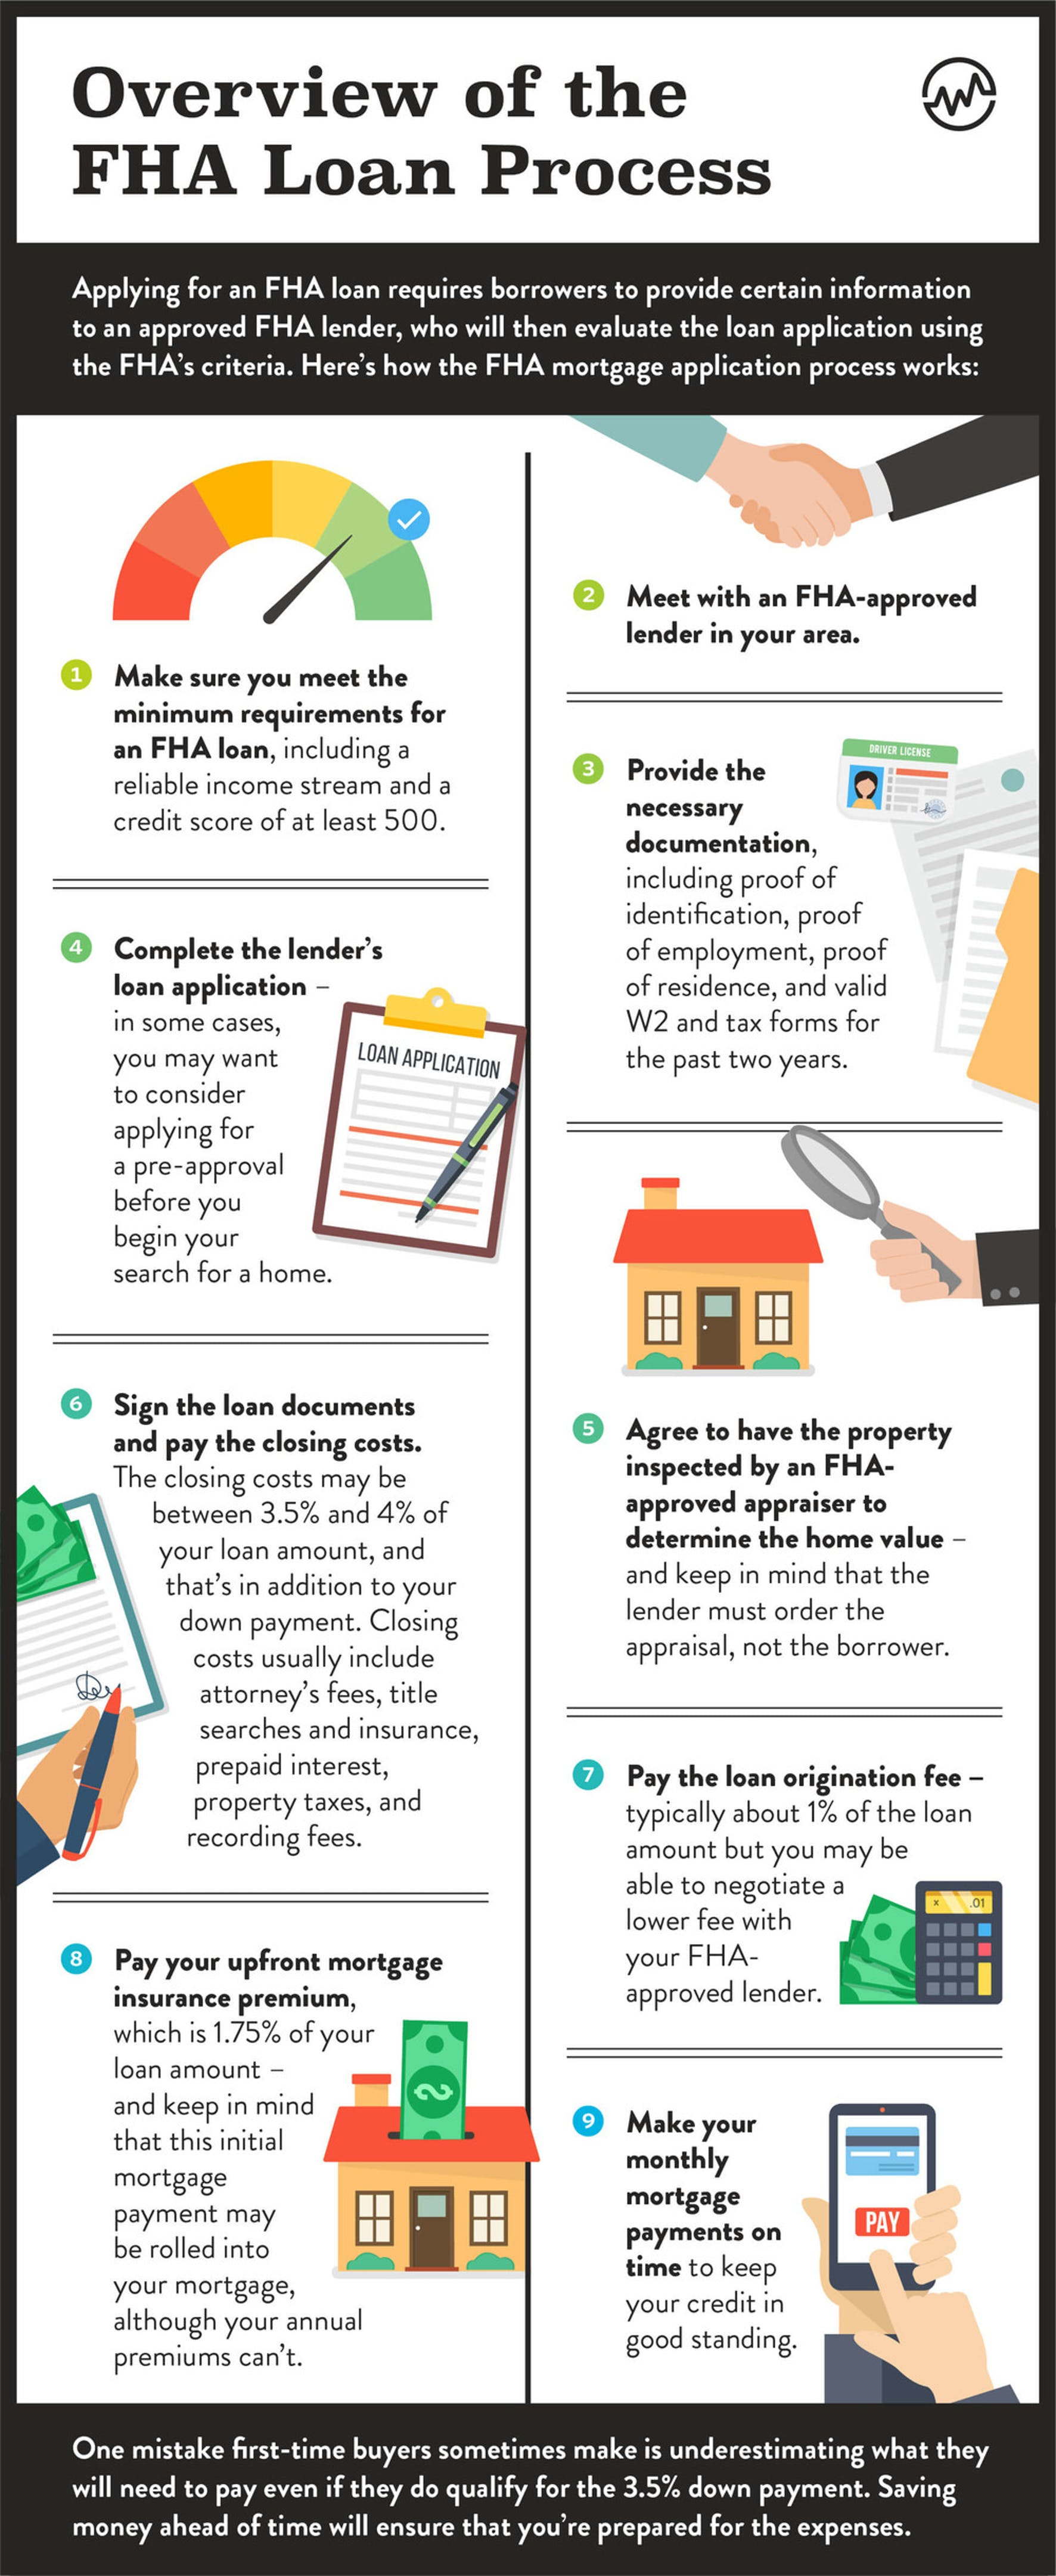 fha loan process steps infographic